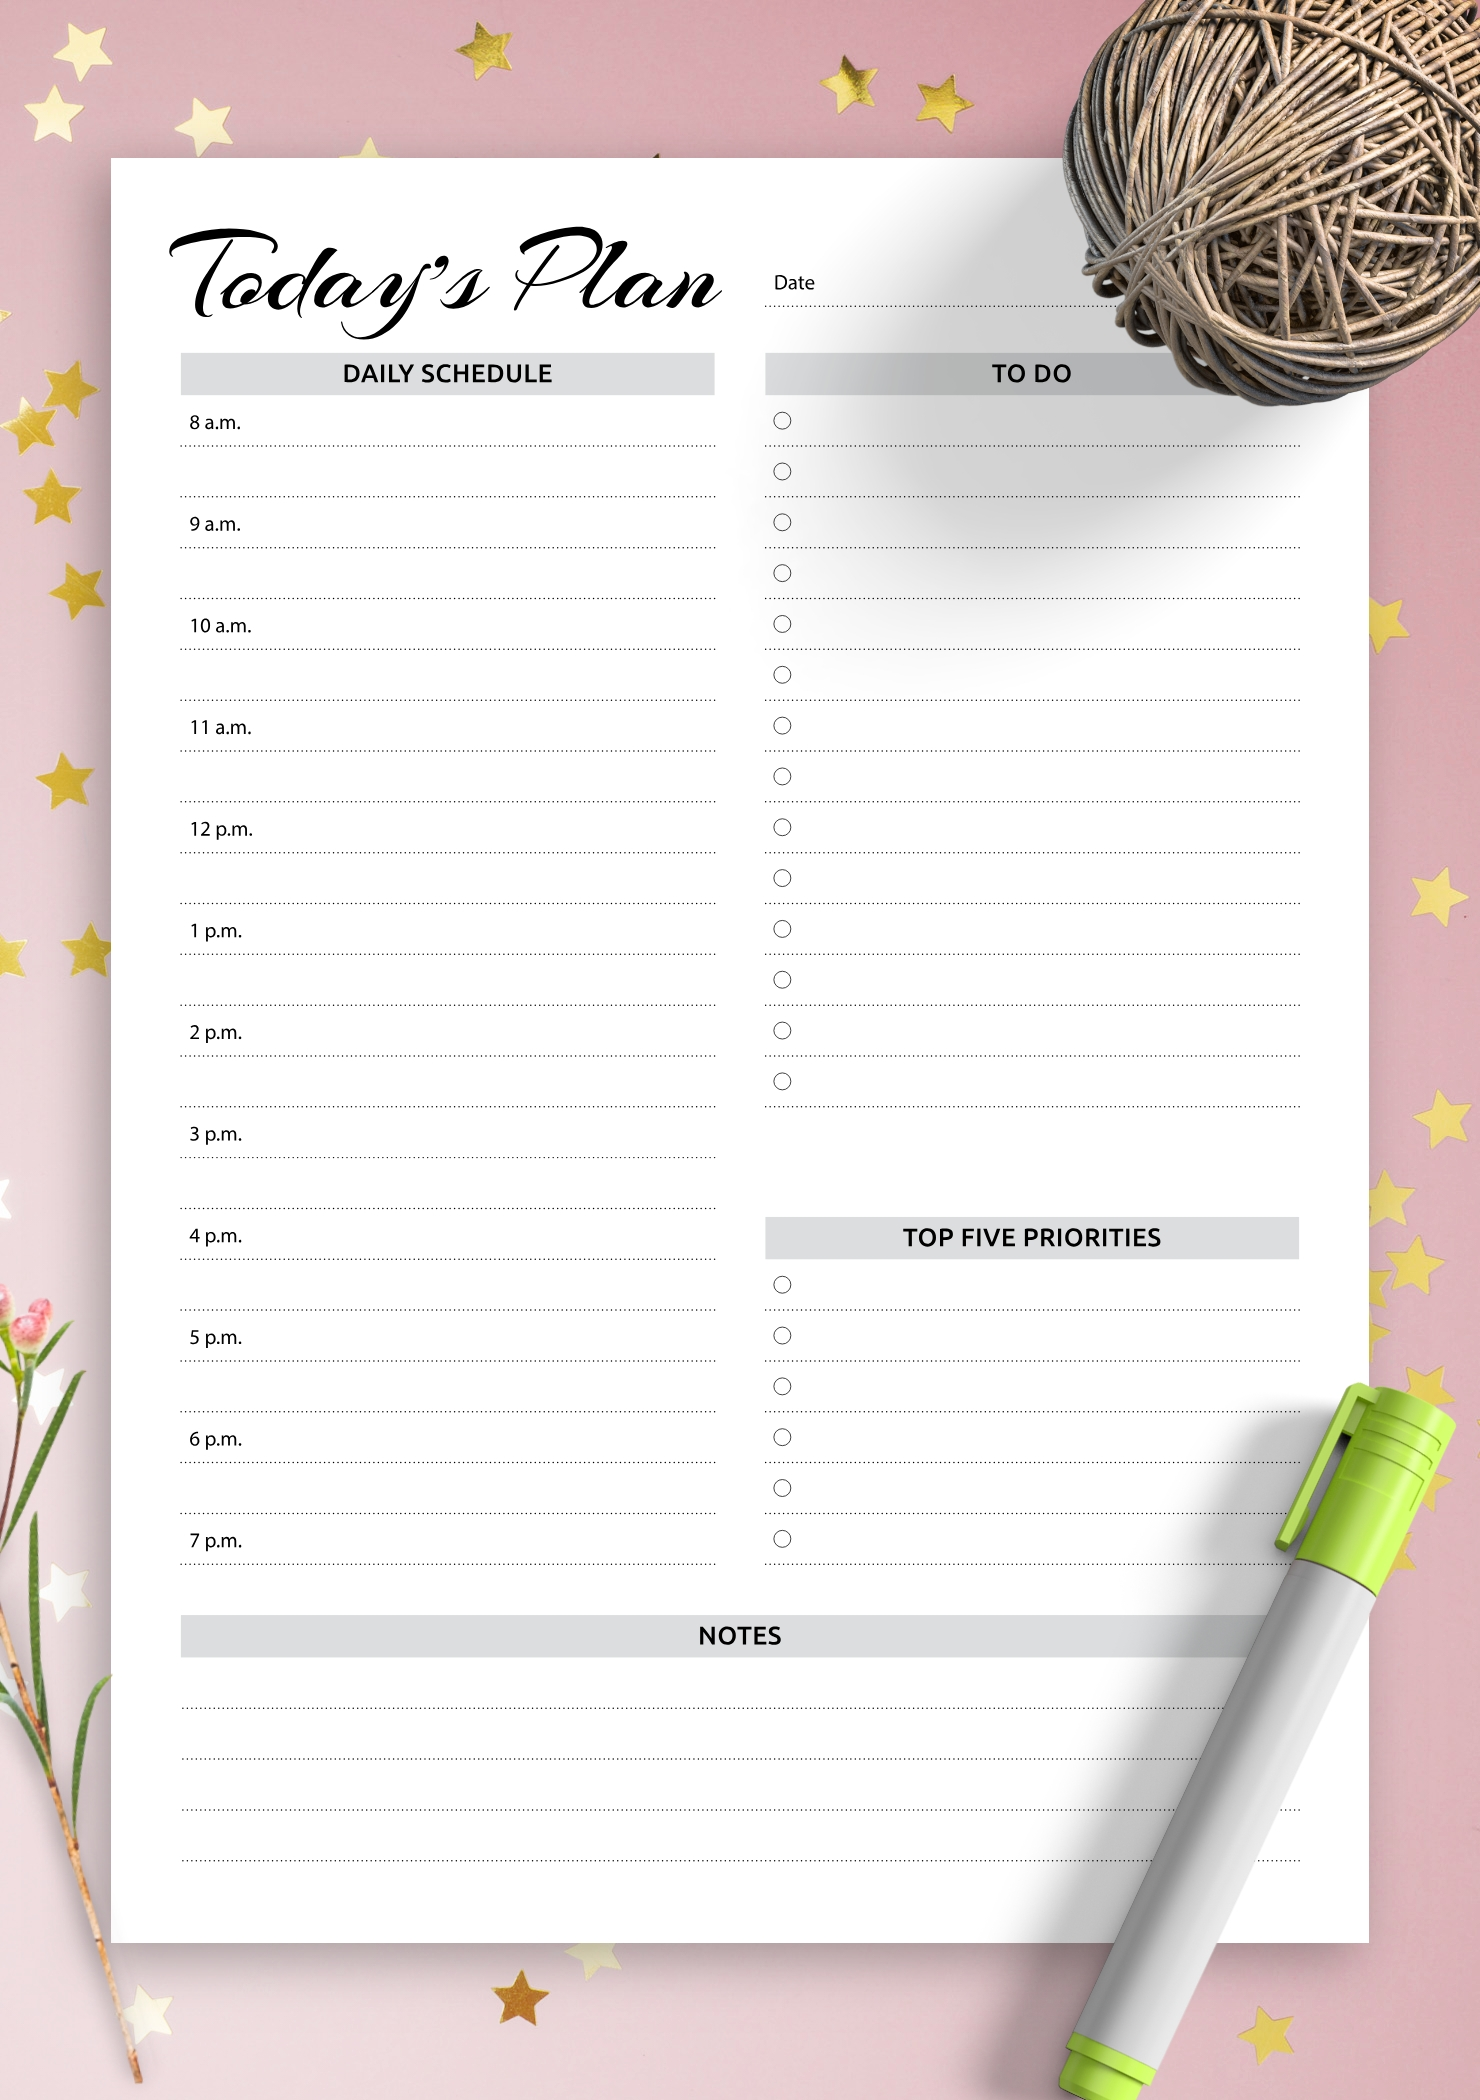 Daily Planner With Hourly Schedule & To-Do List - Am/Pm